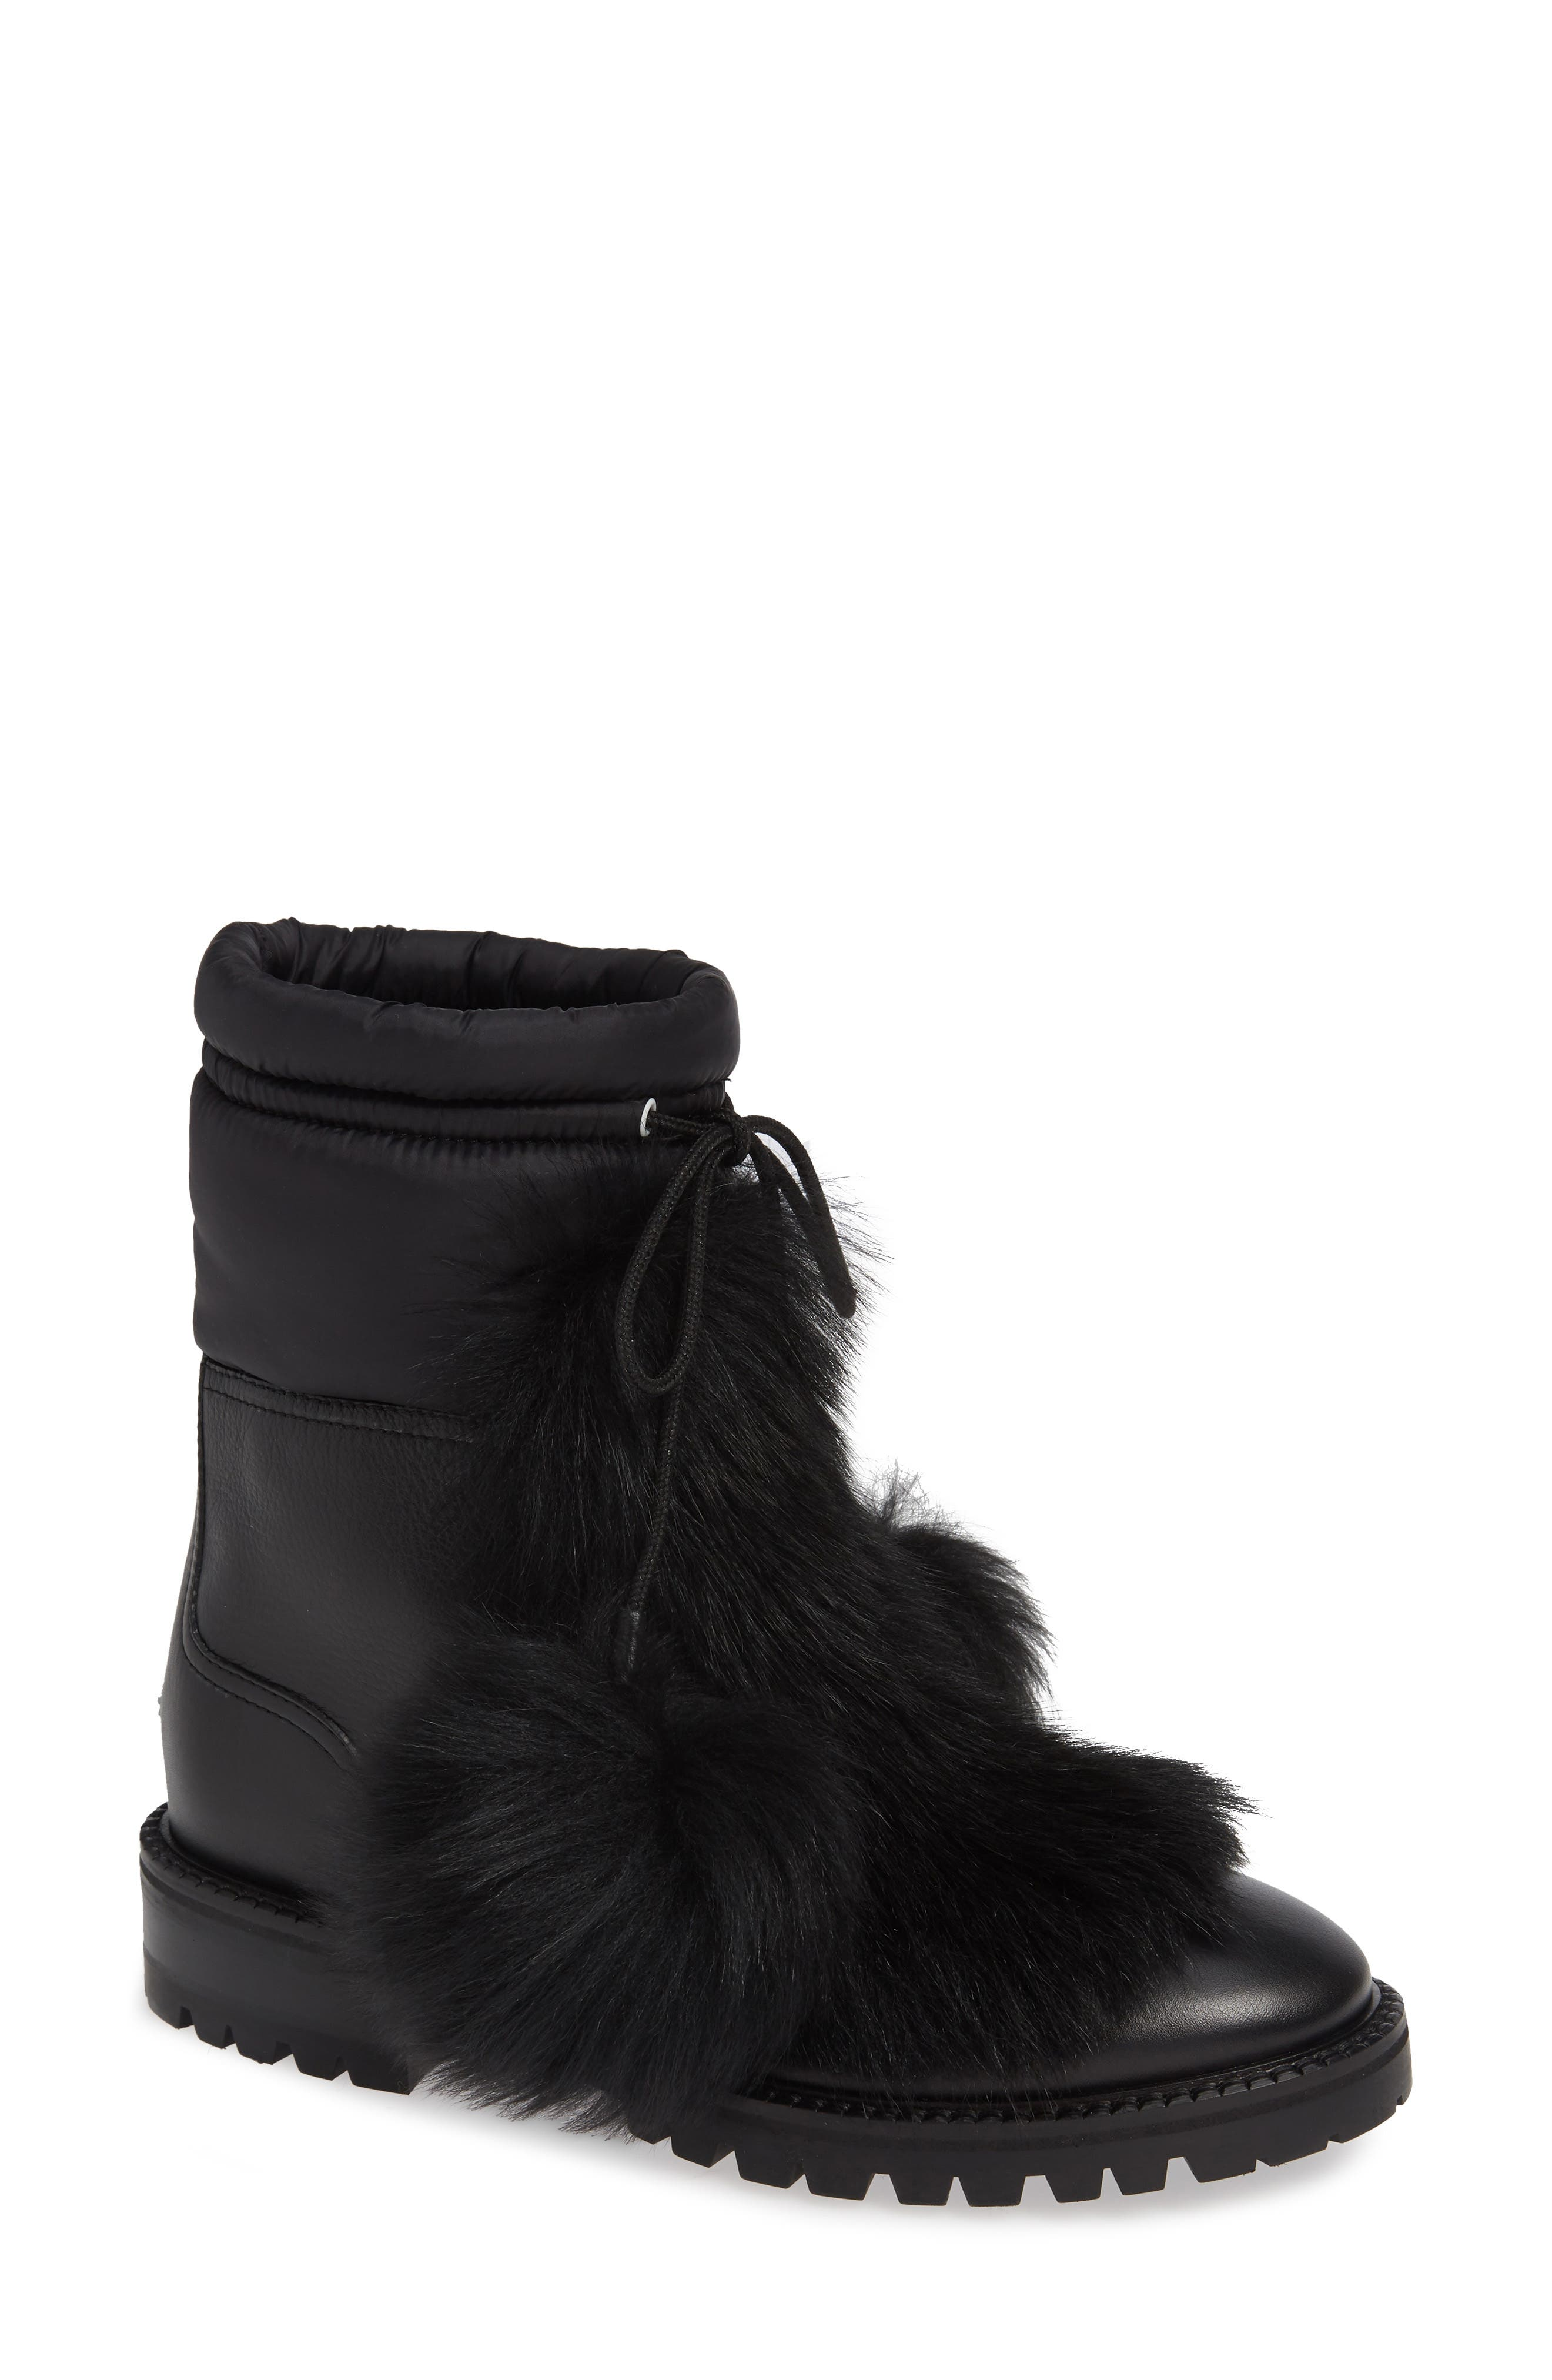 Glacie Genuine Shearling Bootie,                             Main thumbnail 1, color,                             BLACK